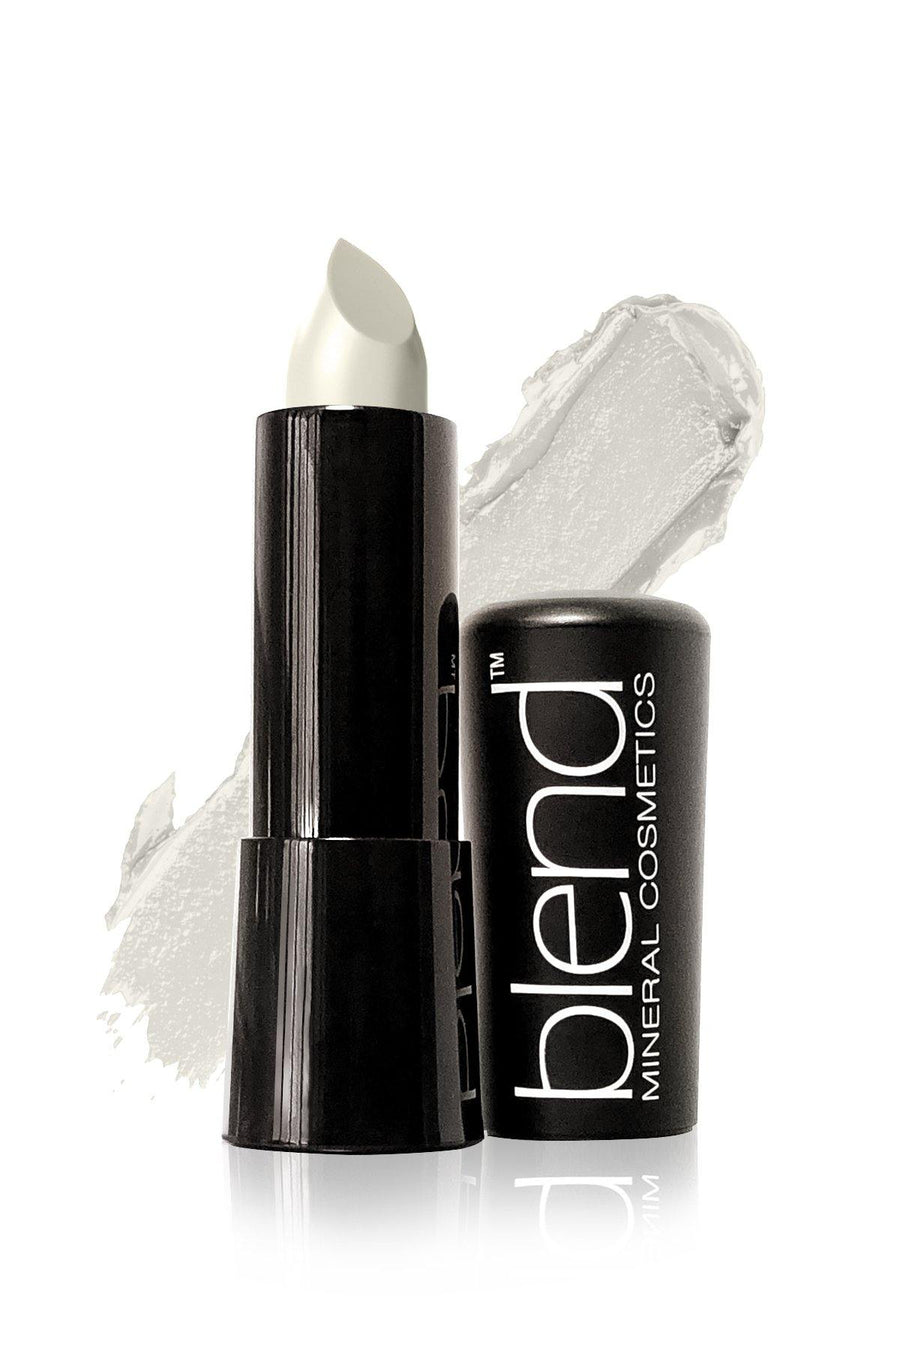 Lipstick #18 - Clear/LipHealer - Blend Mineral Cosmetics